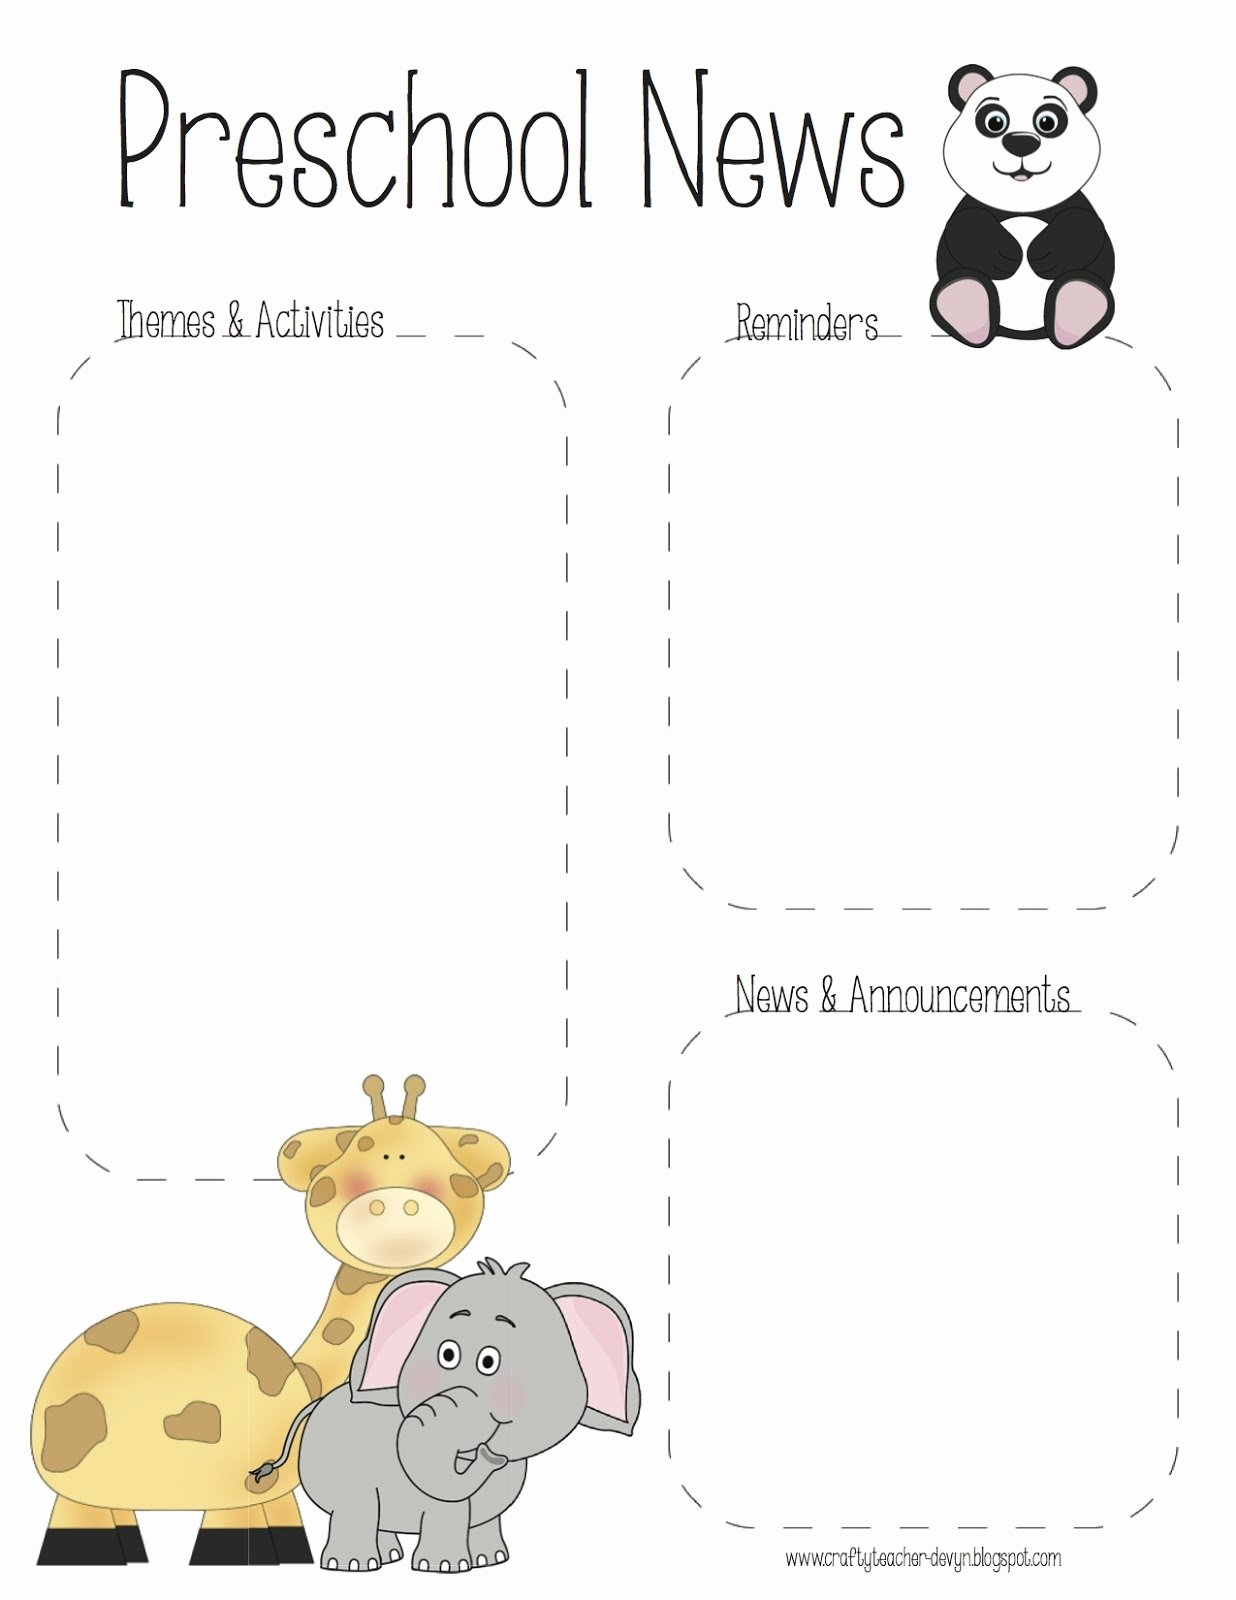 April Newsletter Template Best Of the Crafty Teacher Preschool Zoo Newsletter Template